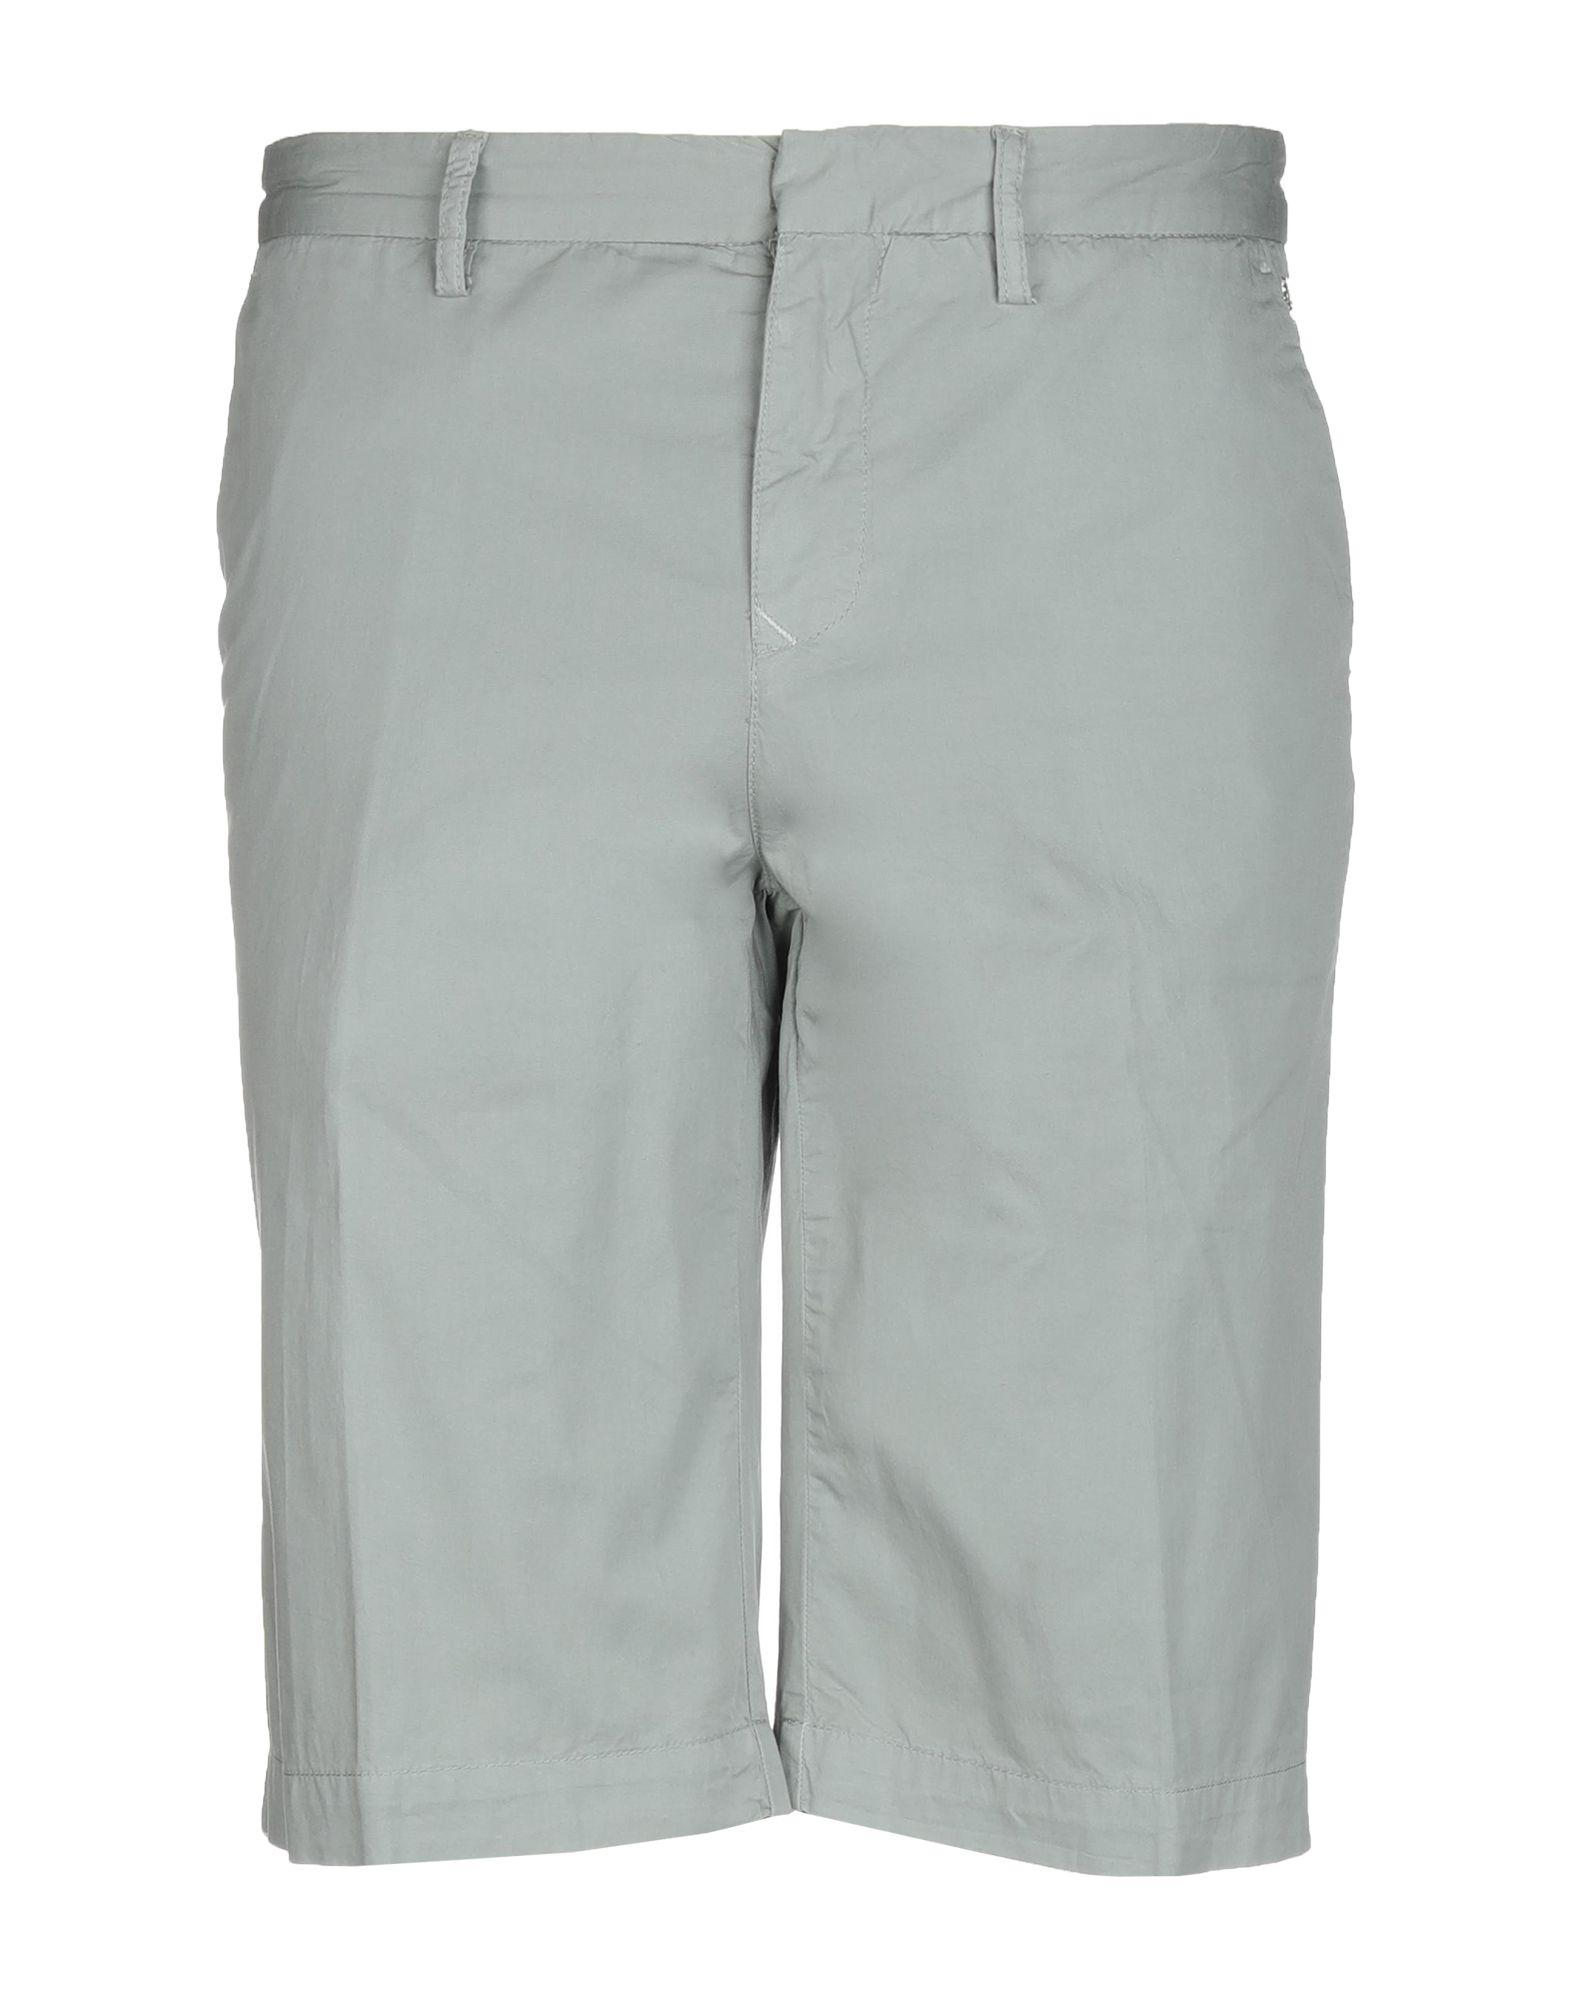 0aa11bf44ae1 Lyst - Kenzo Bermuda Shorts in Gray for Men